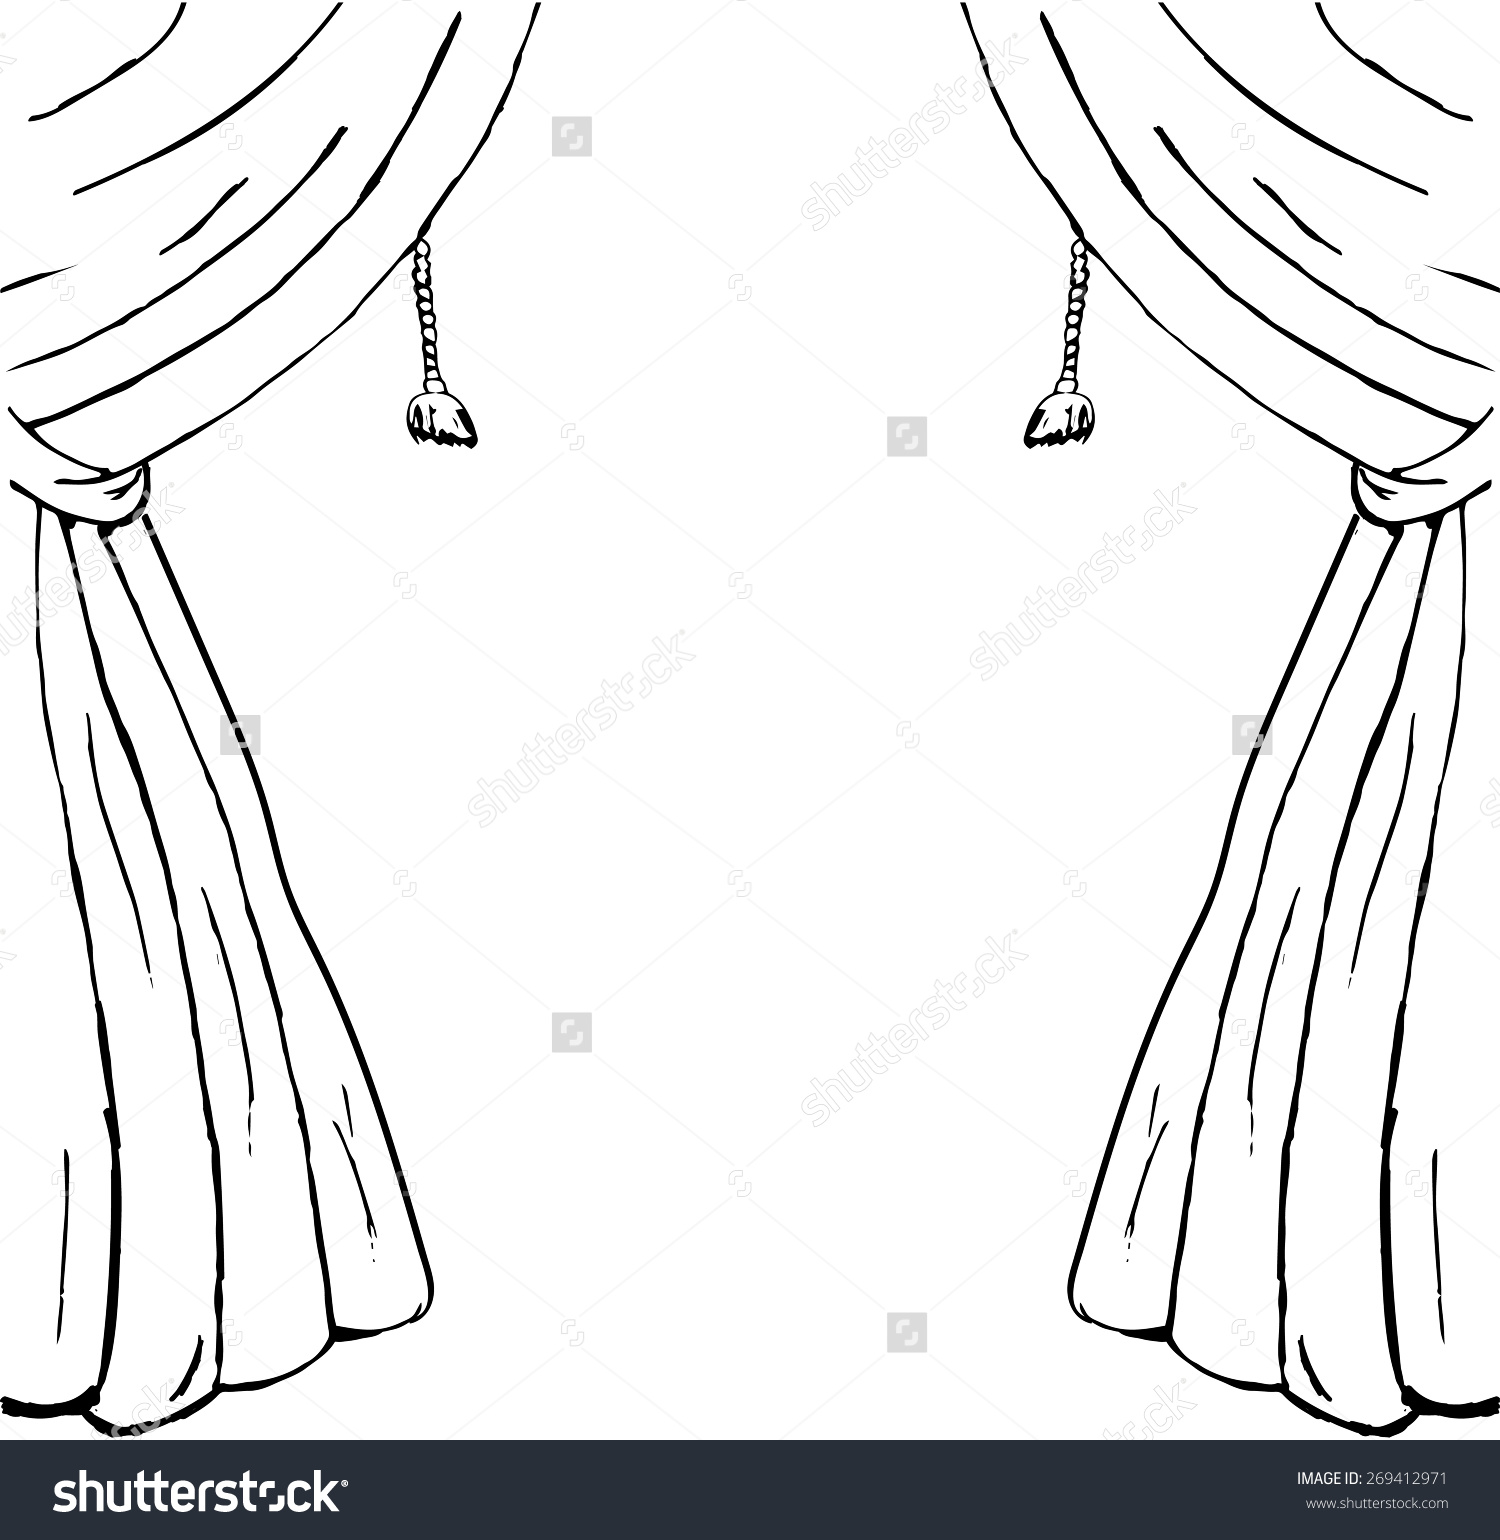 Drawn Sketch Curtains Design Element Stock Vector 269412971.